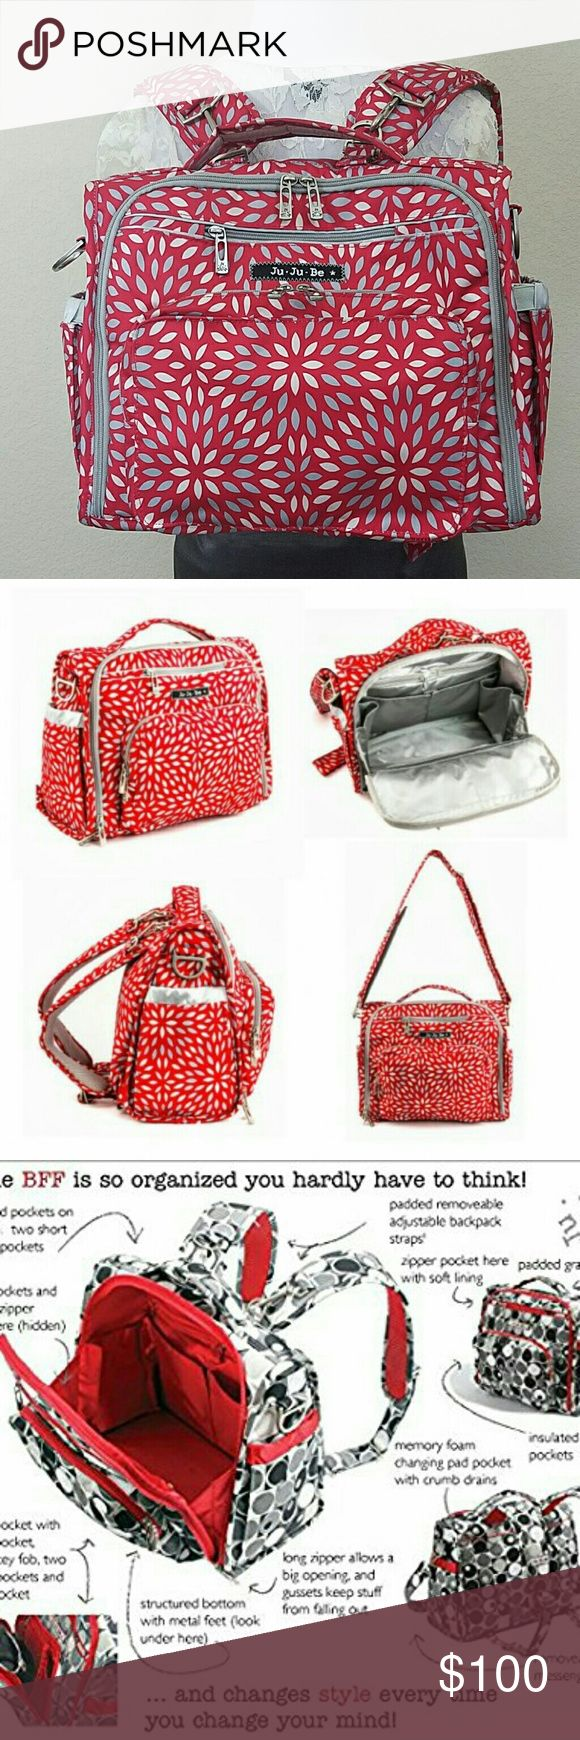 diaper bags designer cheap lehh  Ju-Ju-Be BFF Diaper Bag UC Ju-Ju-Be BFF diaper